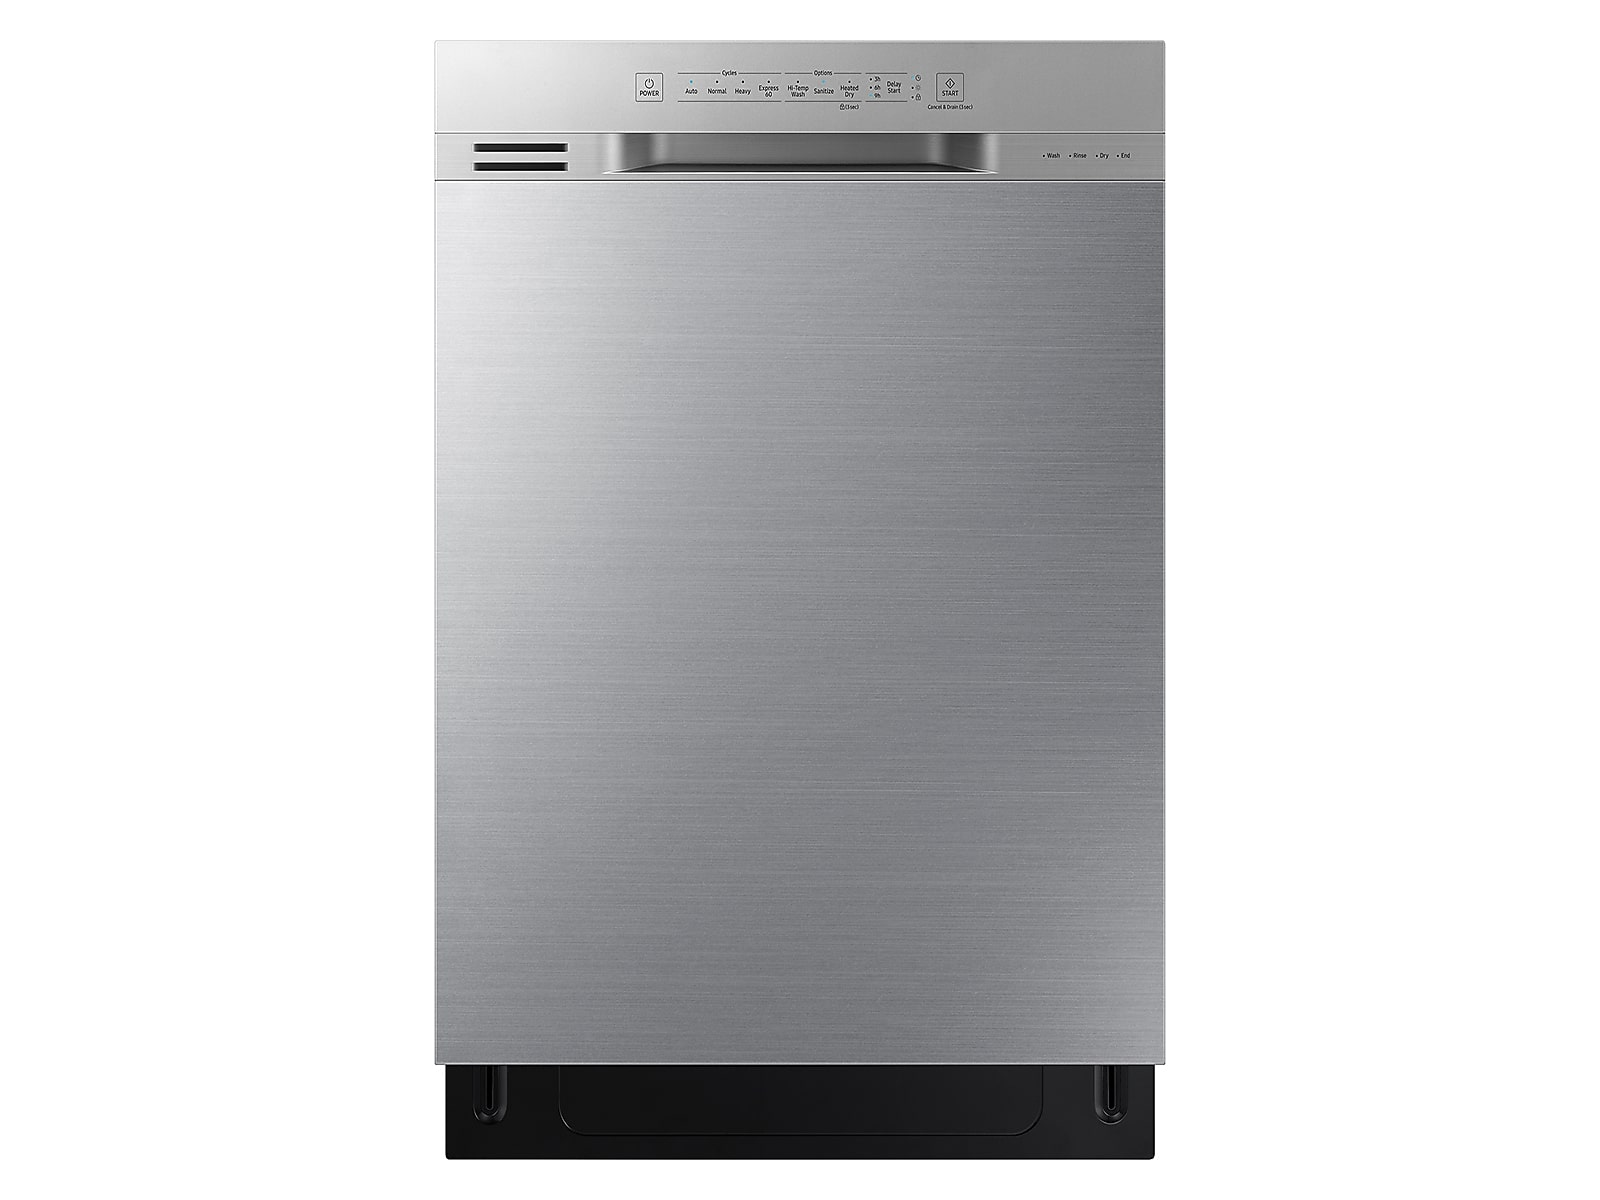 Samsung coupon: Samsung Front Control 51 dBA Dishwasher with Hybrid Interior in Stainless Steel(DW80N3030US/AA)